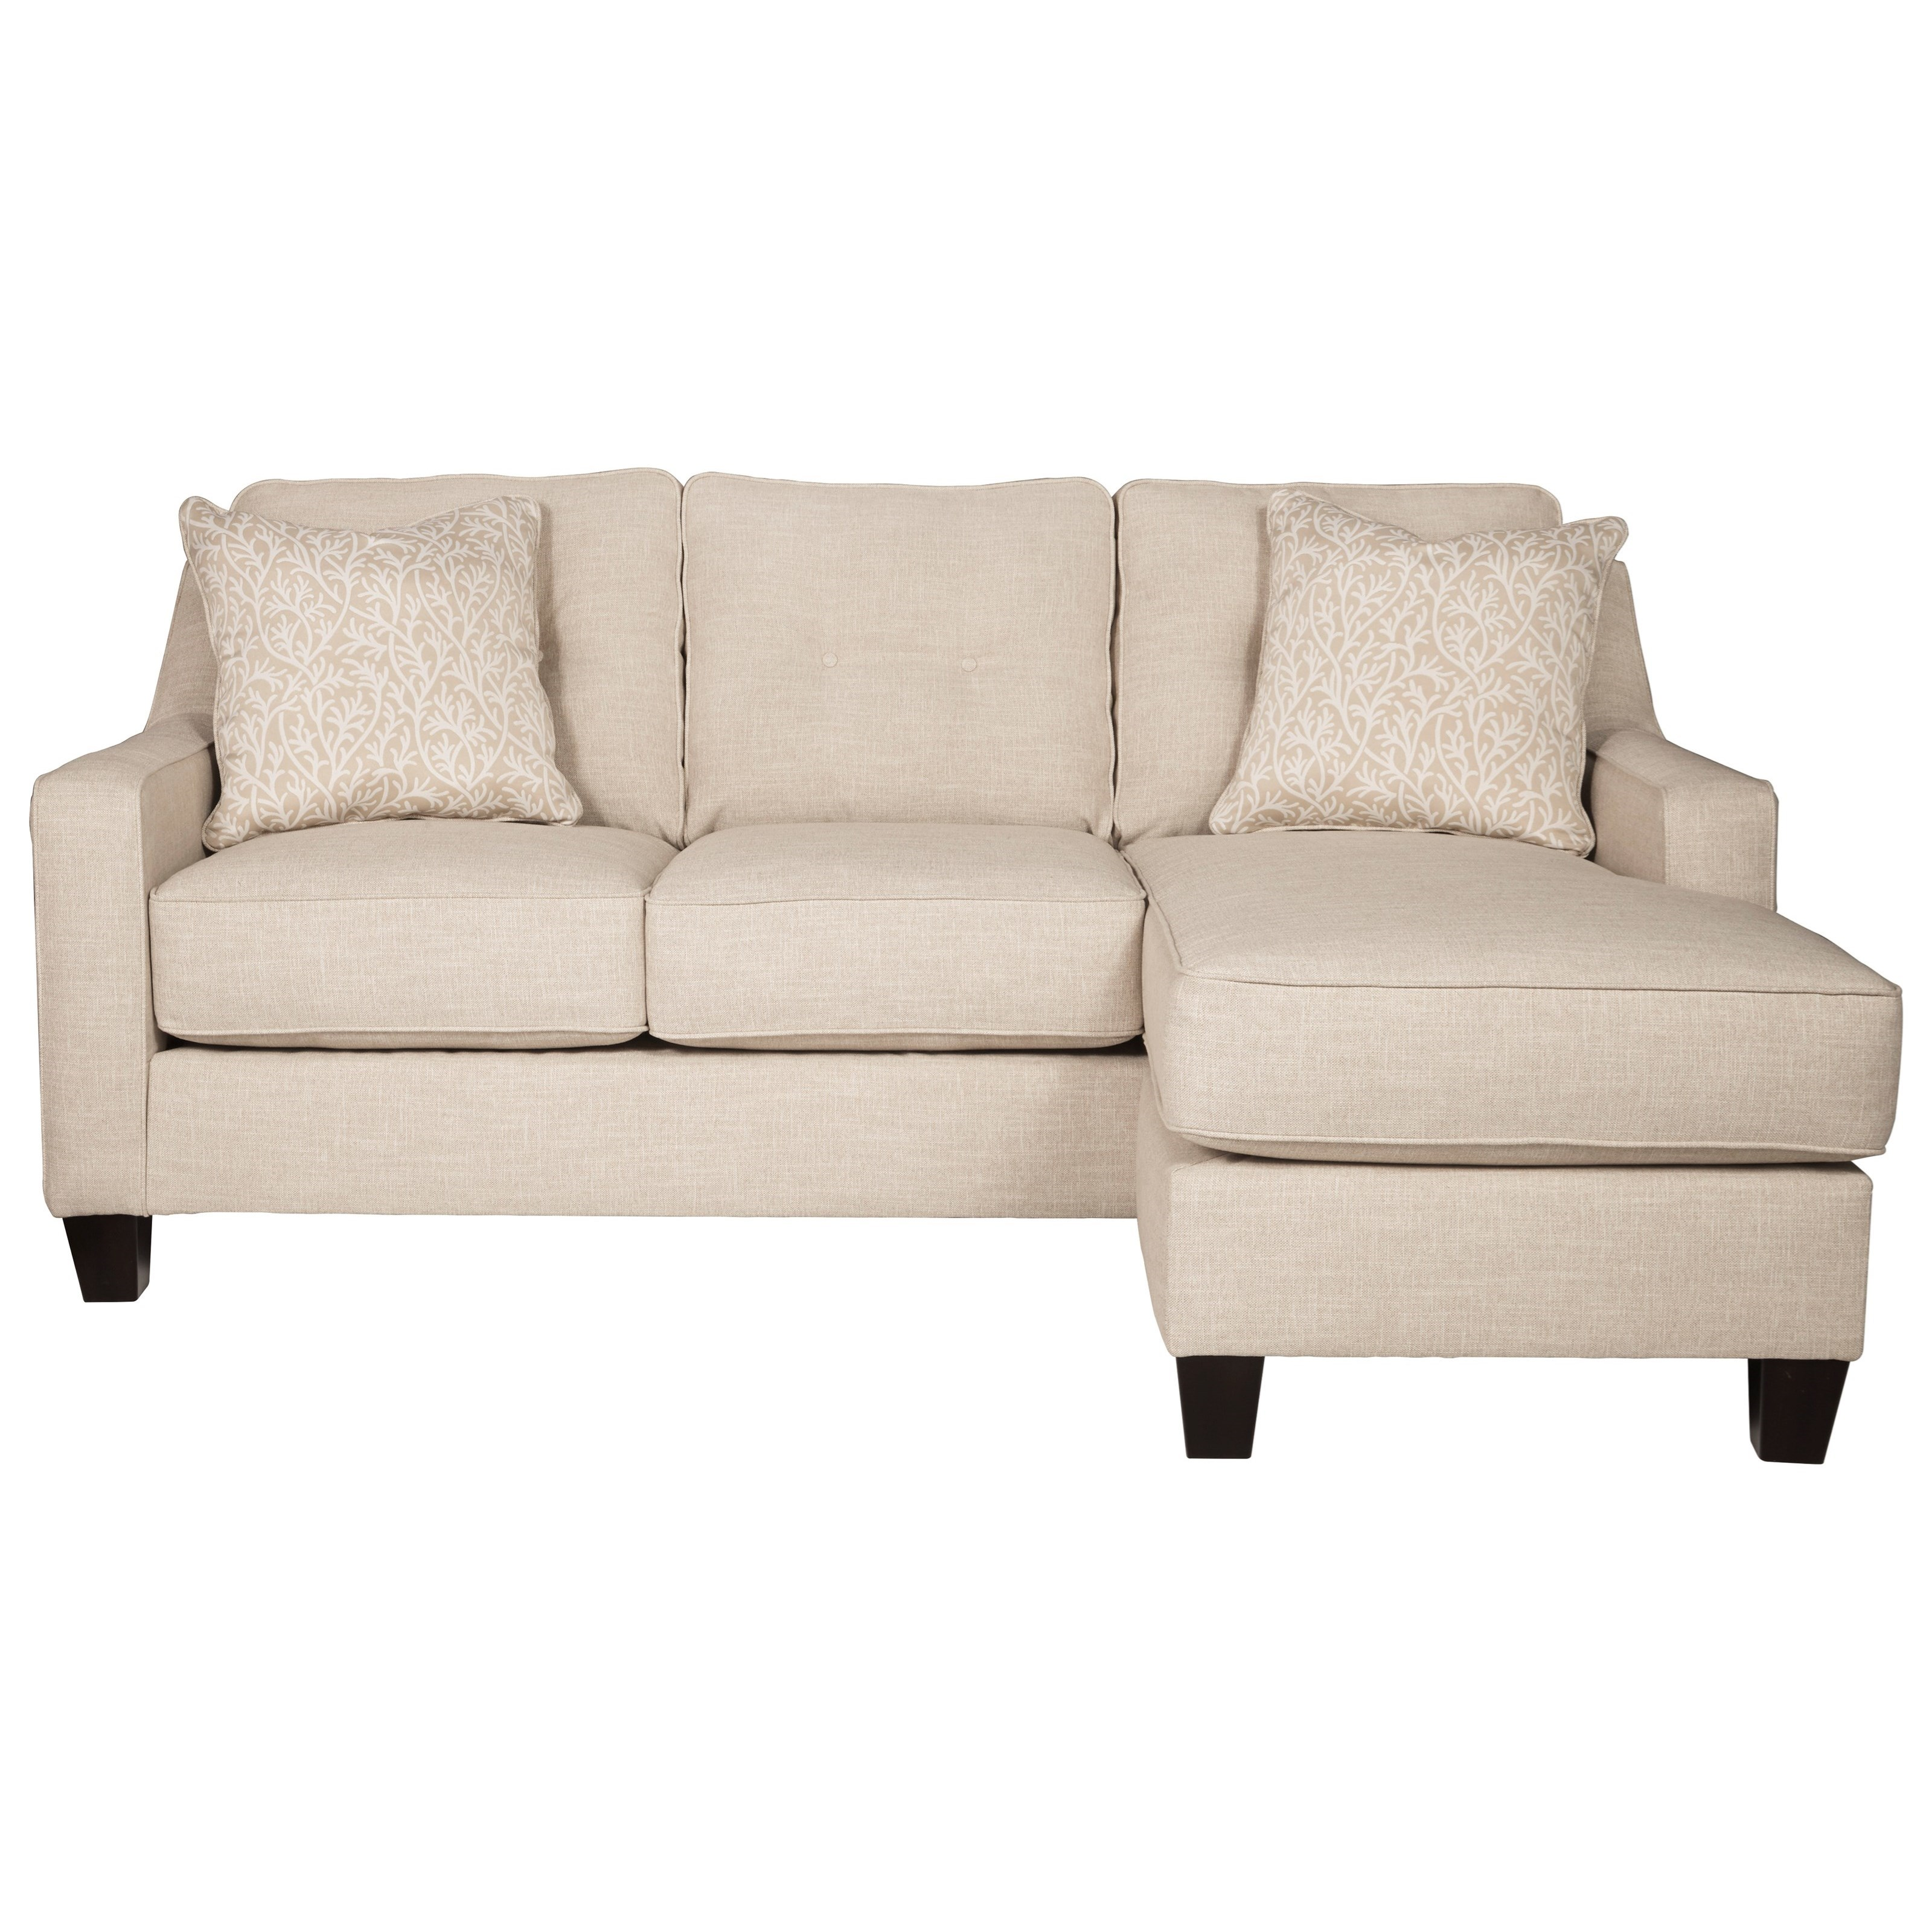 Benchcraft Aldie Nuvella Queen Sofa Chaise Sleeper - Item Number: 6870568